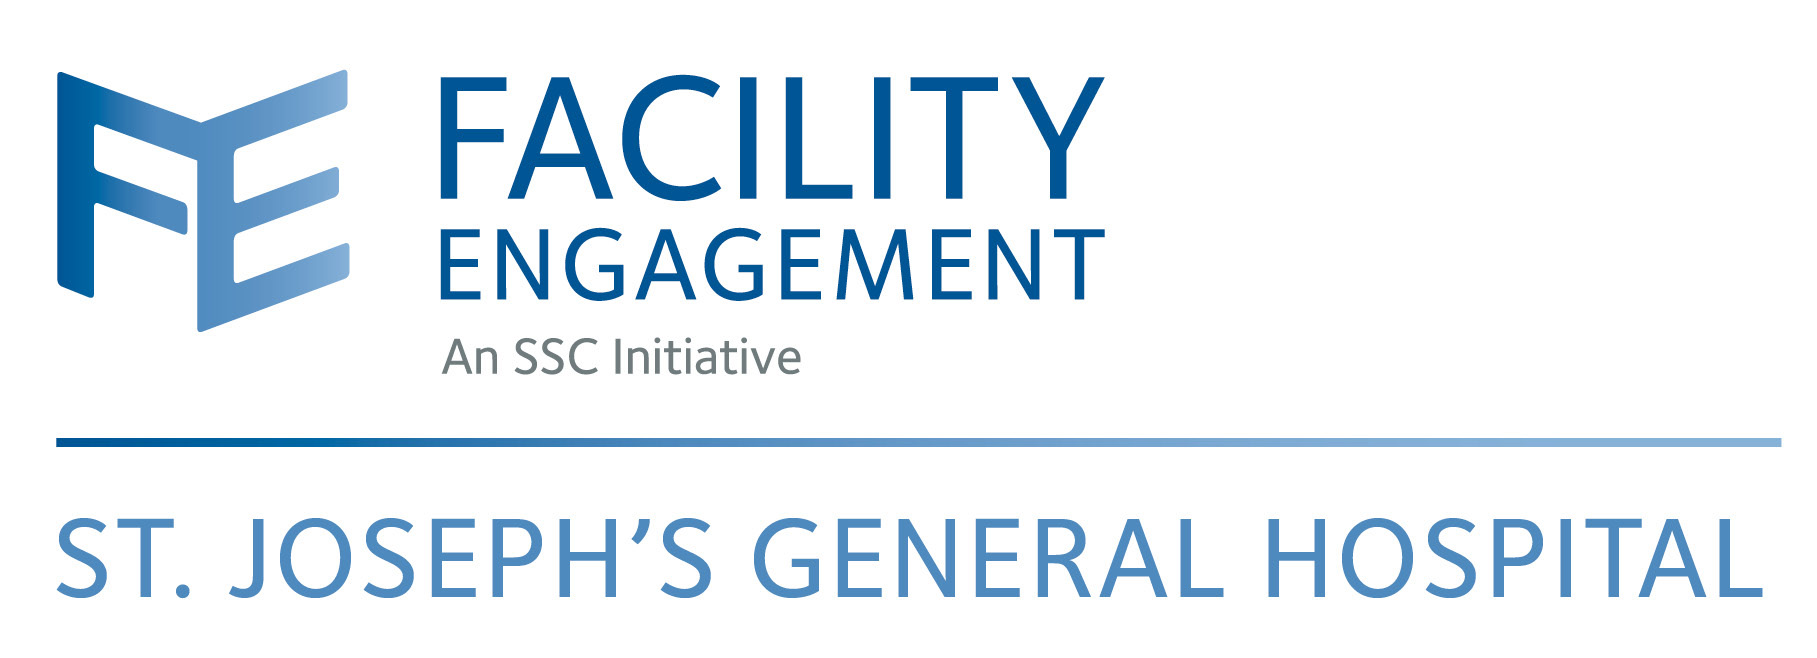 Engagement and Communications | SSC Facility Engagement